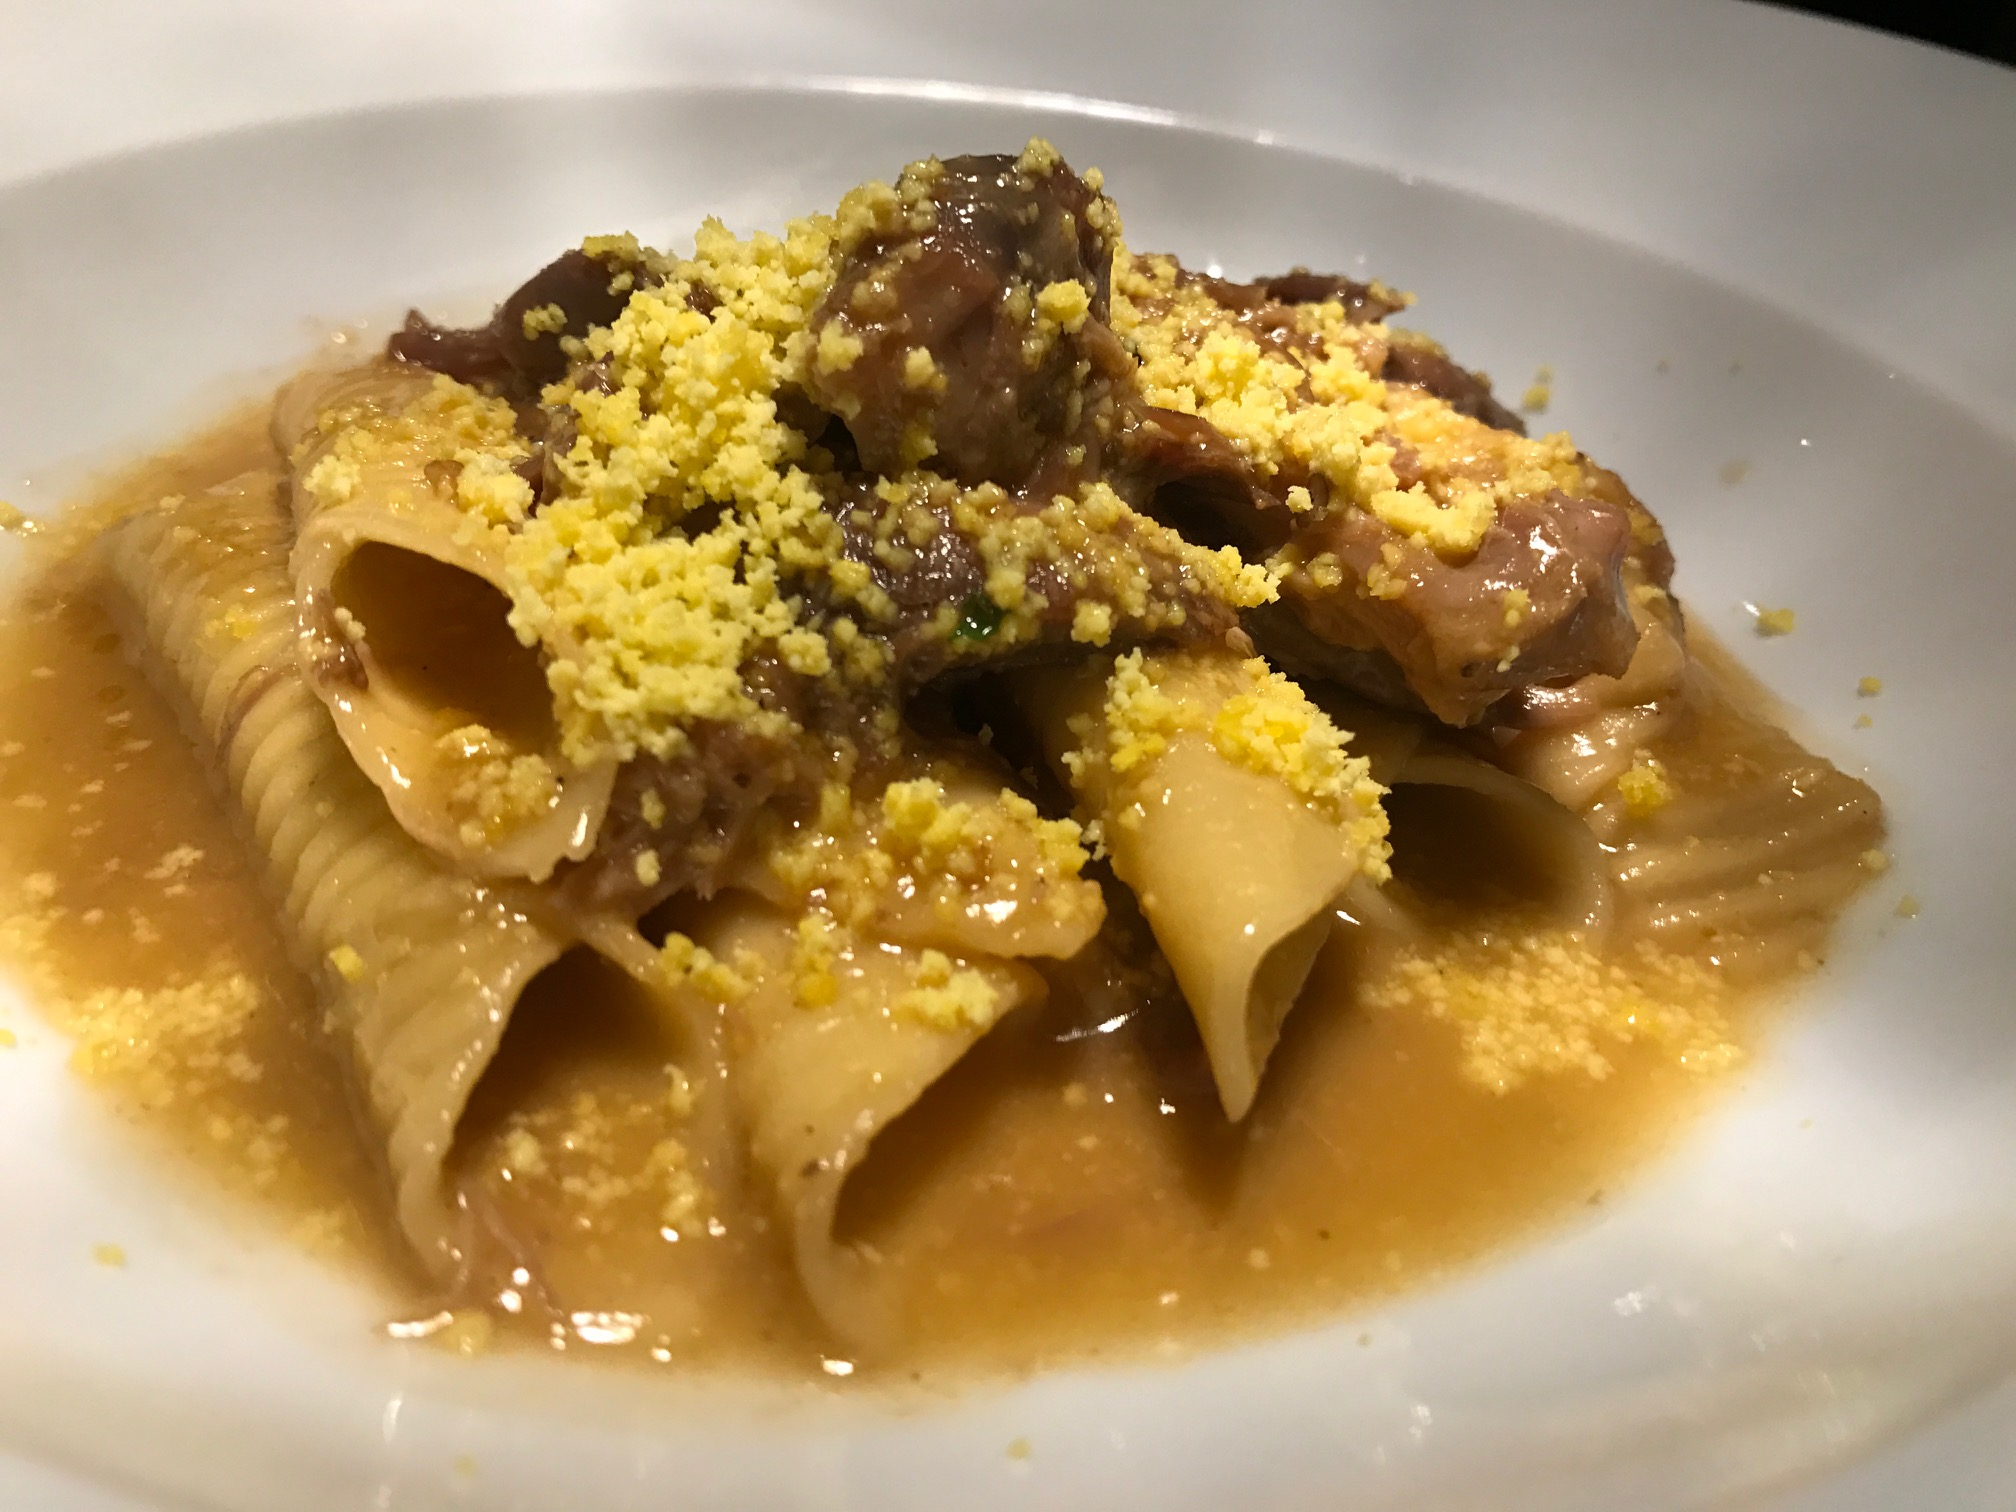 Second Course - garganelli with braised pheasant